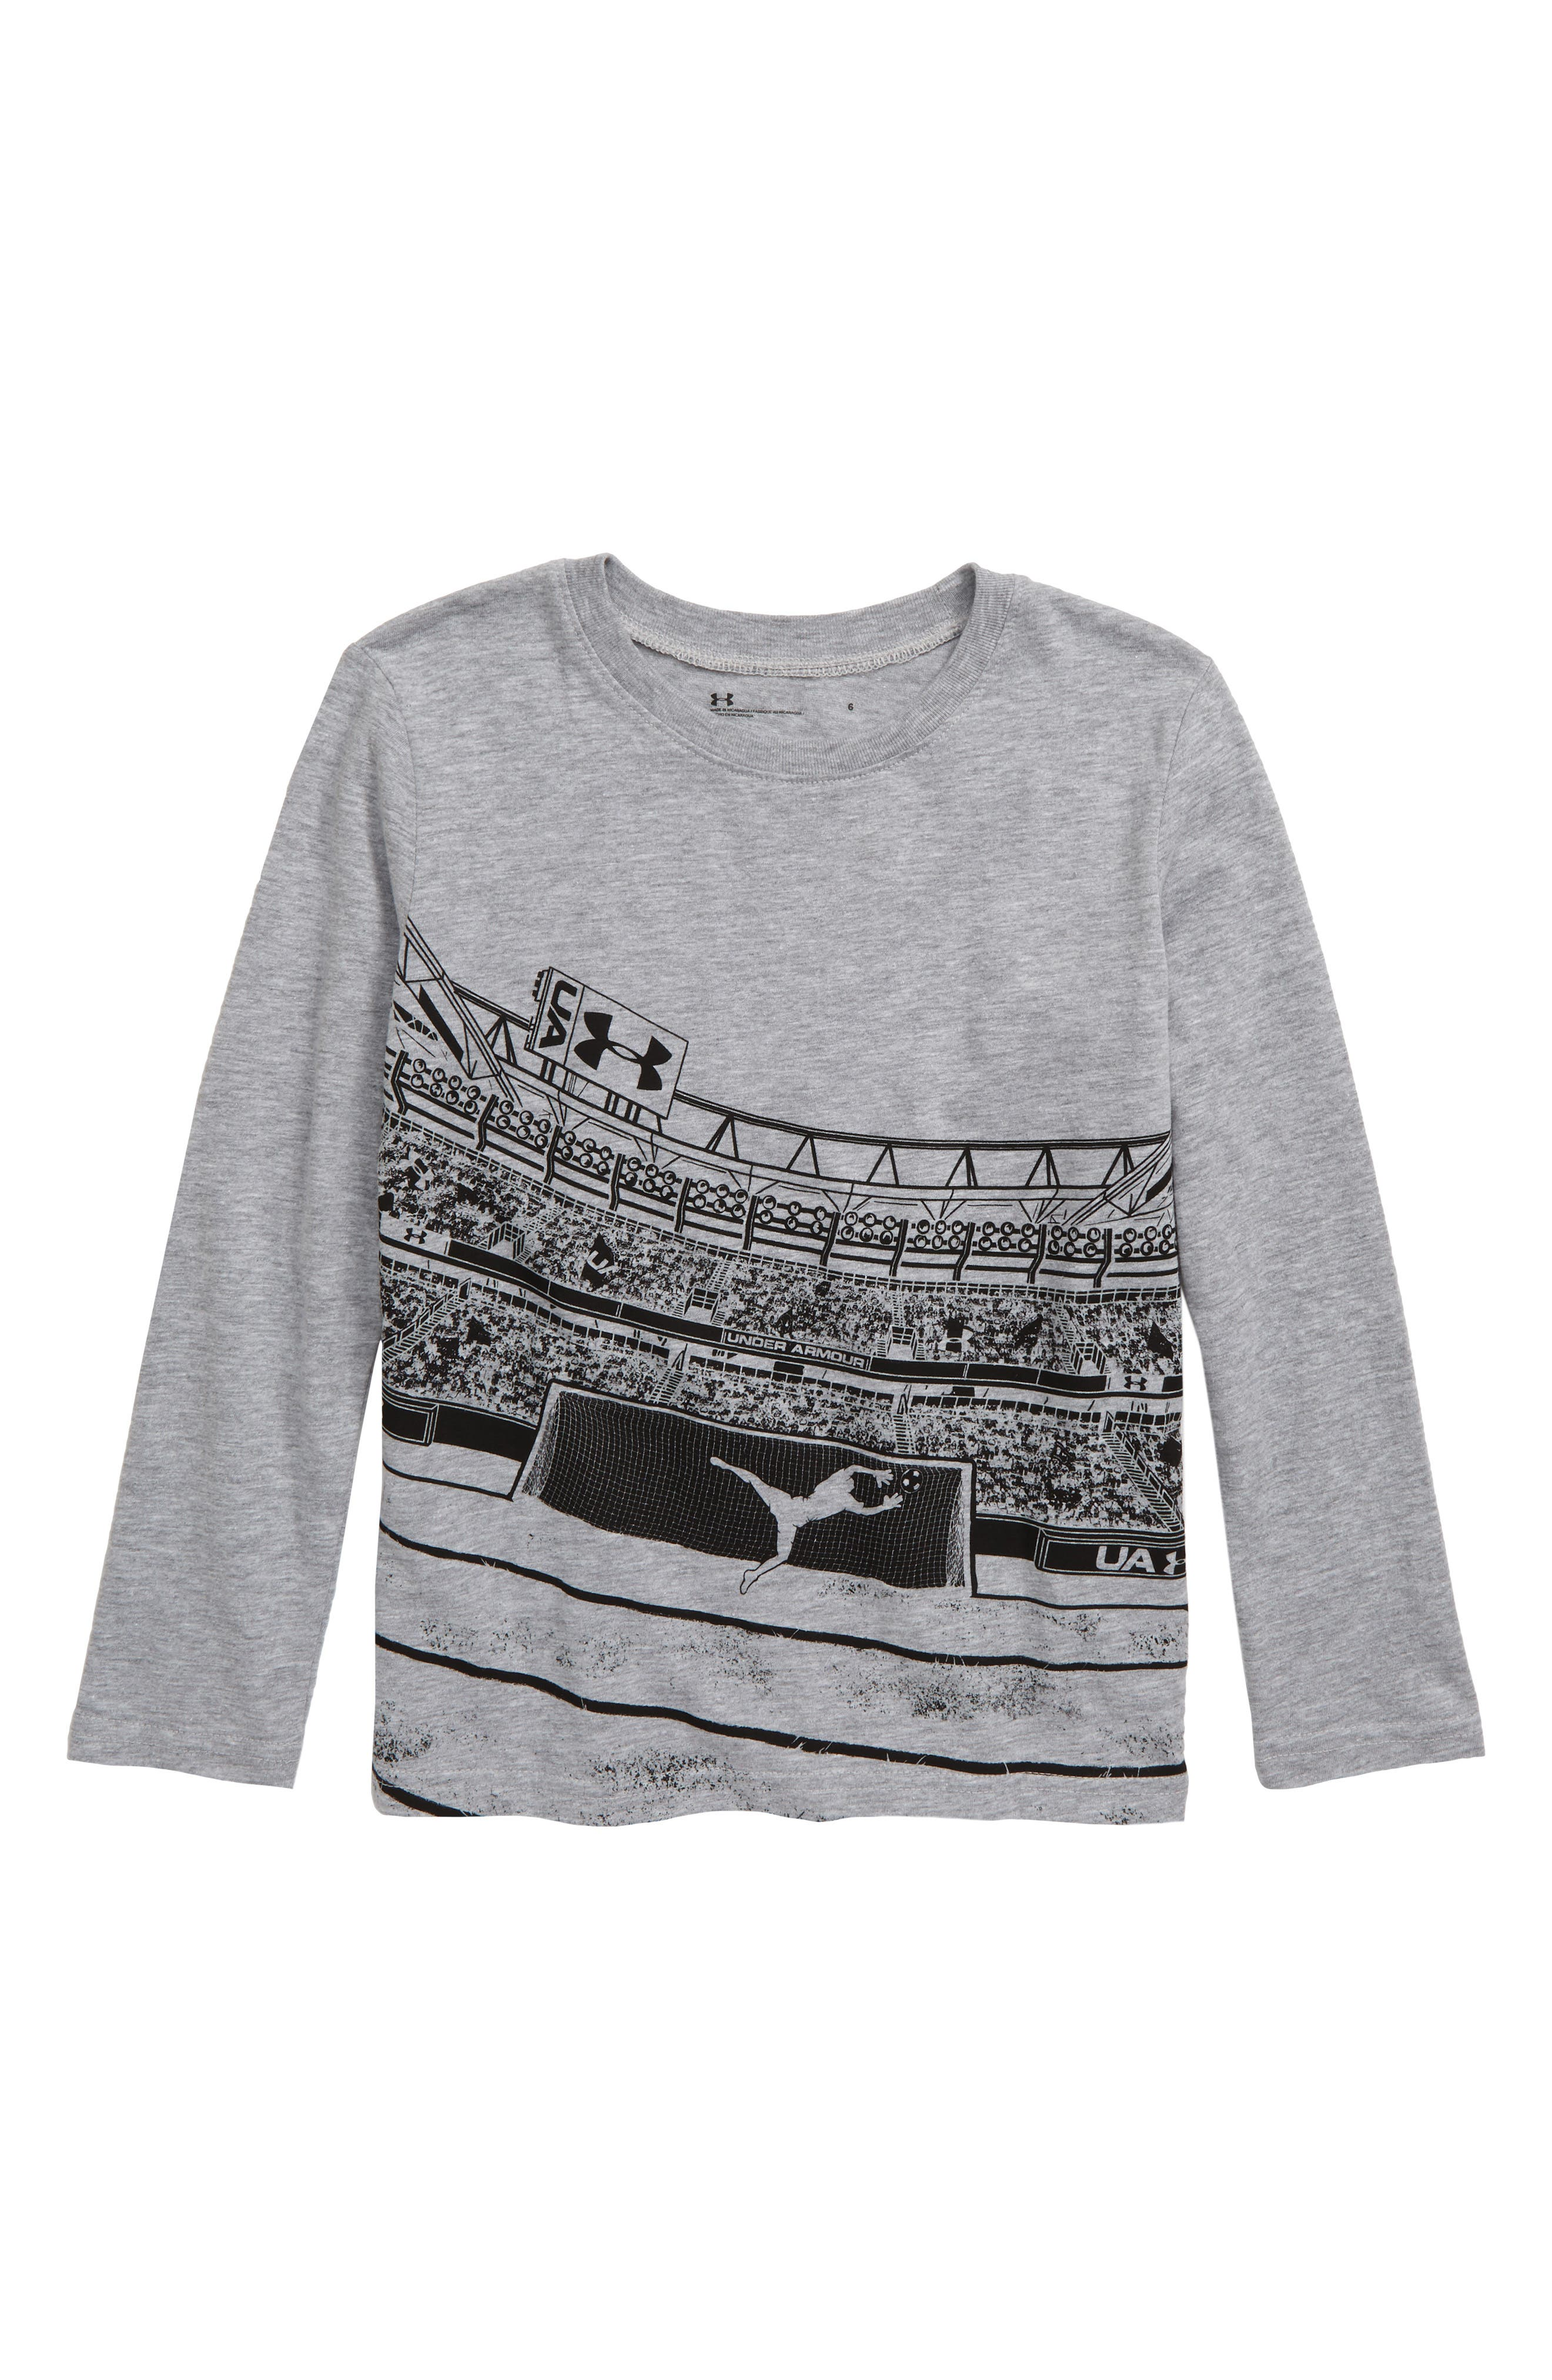 Toddler Boys Under Armour Soccer Graphic TShirt Size 4T  Grey